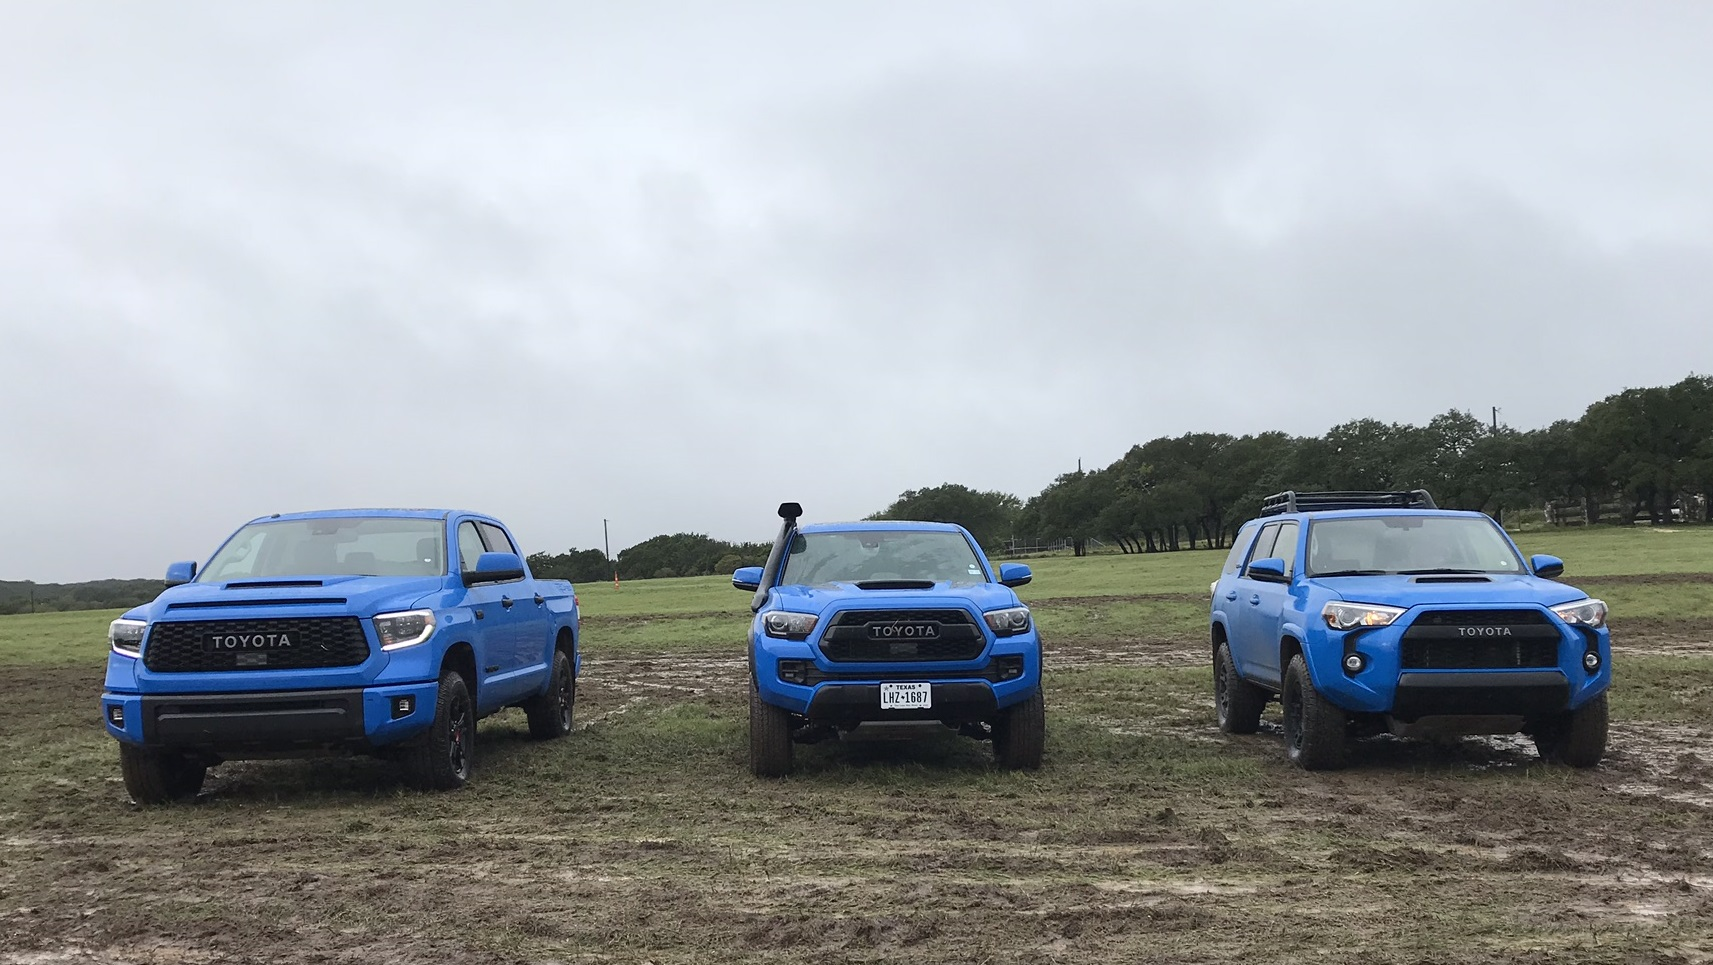 Voodoo Blue And Army Green Too Toyota S Trd Line Kristin V Shaw